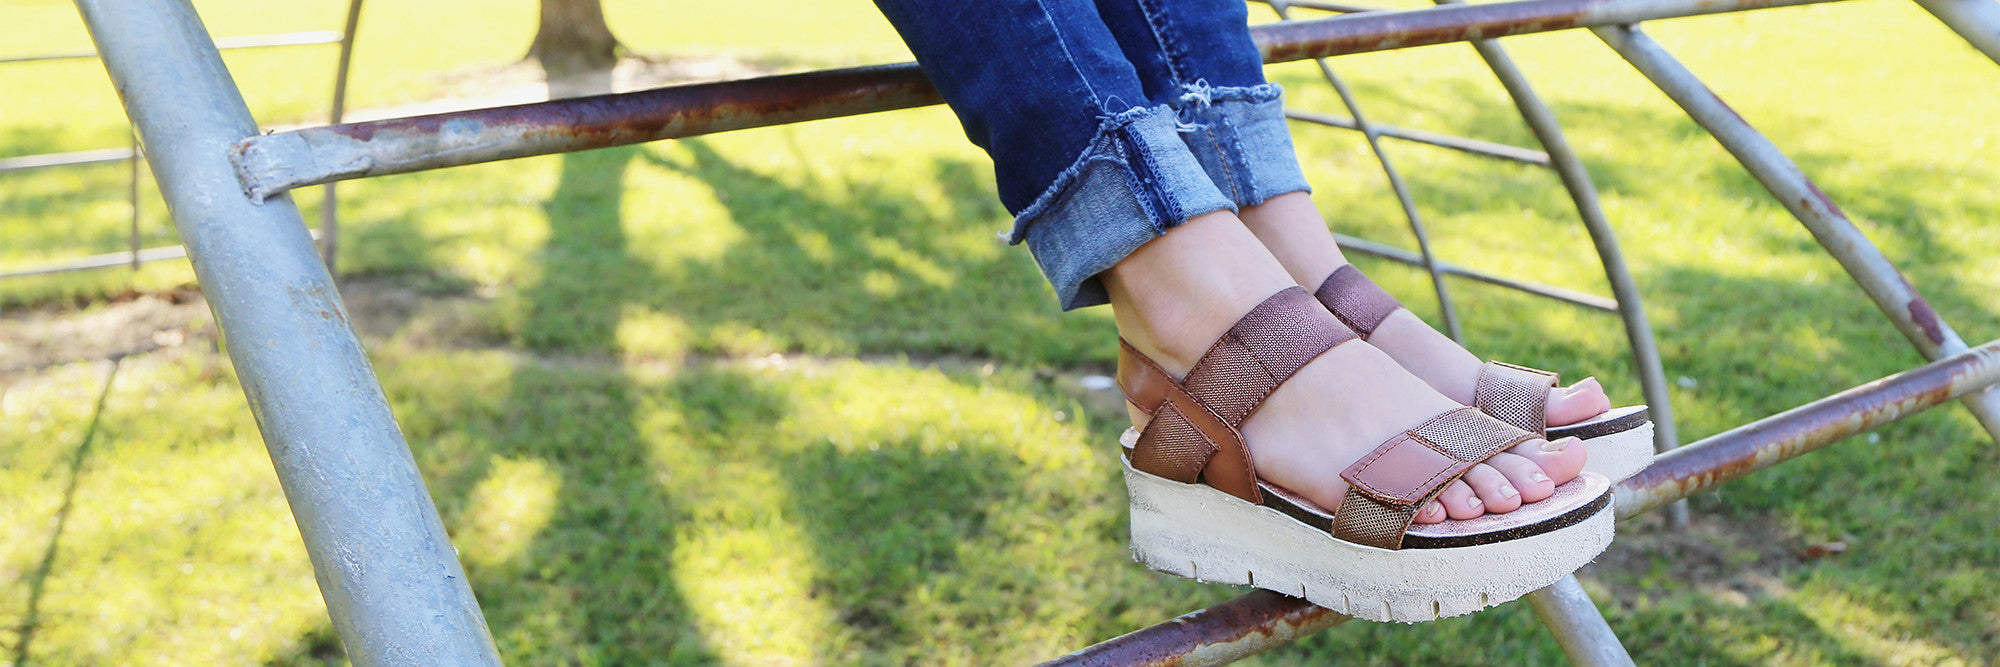 5 Shoes You'll Want in Your Summer Wardrobe